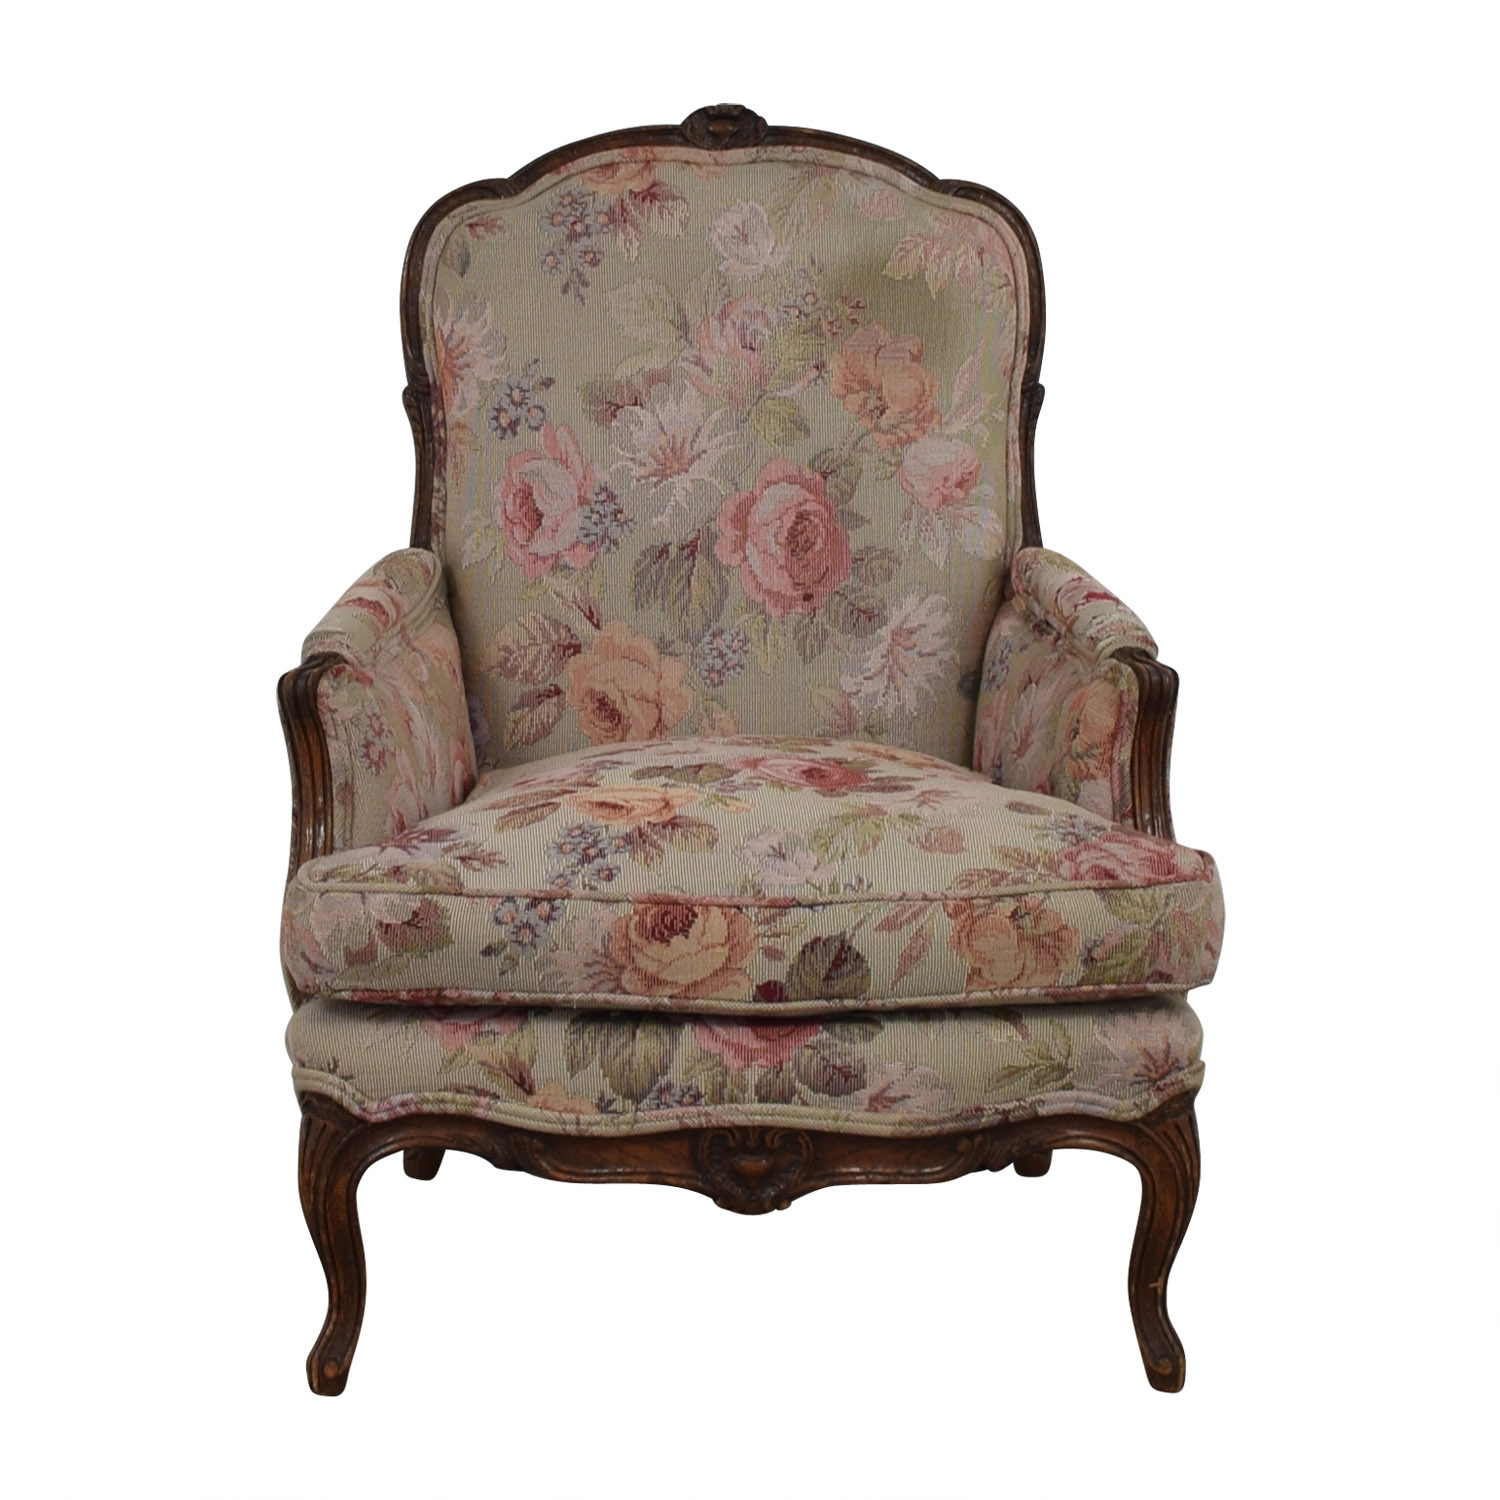 Floral Upholstered Arm Chair on sale